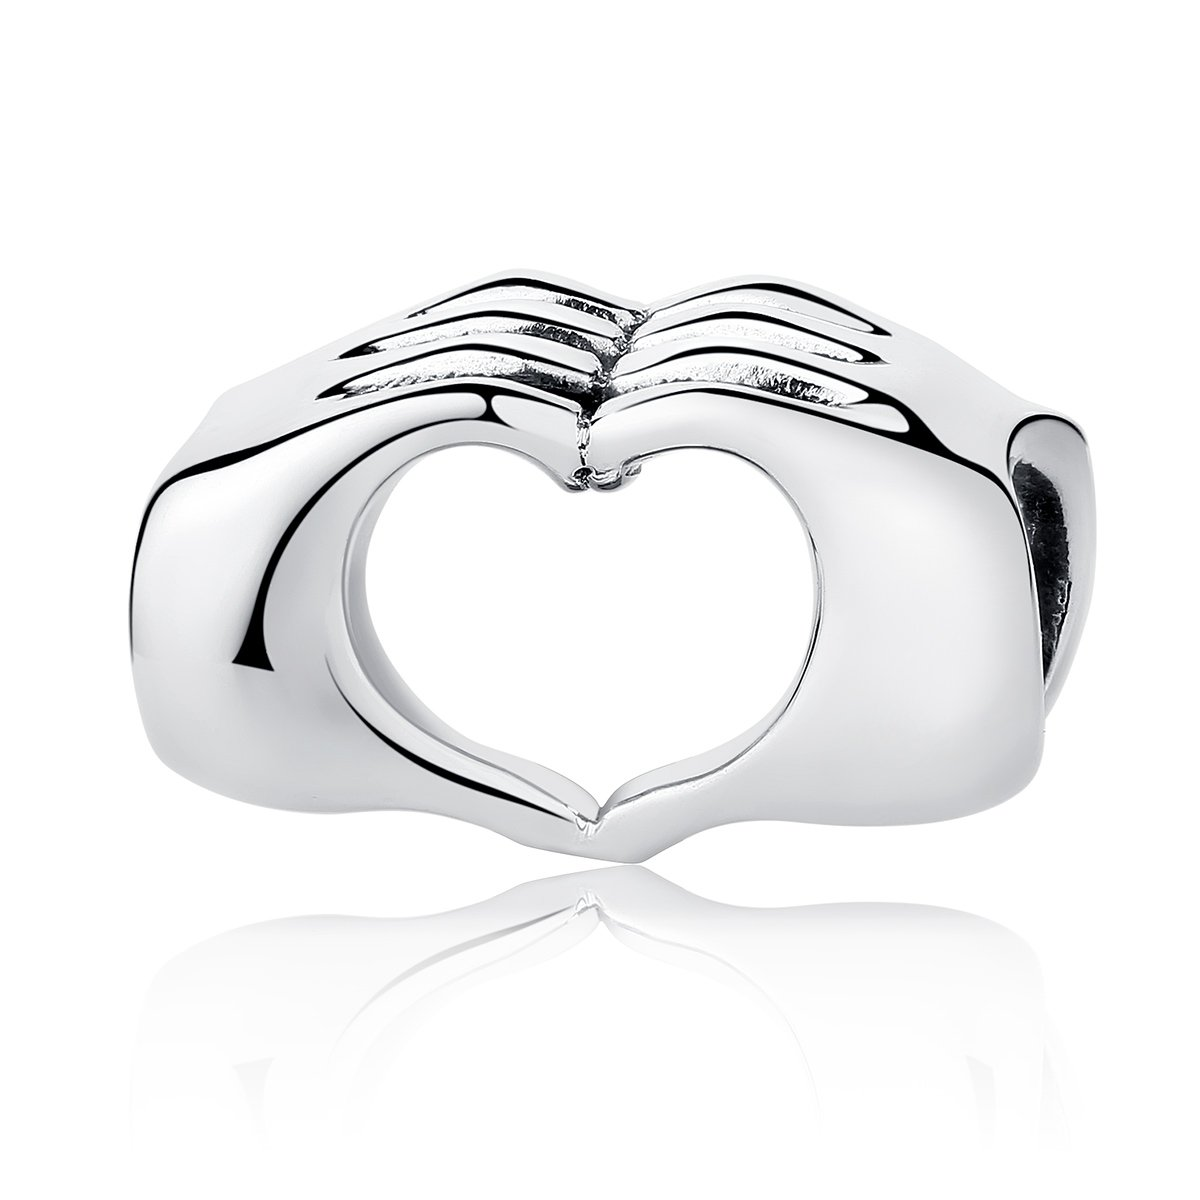 BISAER Heart Hand Bead Charm Love in Your Hands Charm Bead Finger Charm with Heart Charms Fit Snake Chain Bracelets for Women